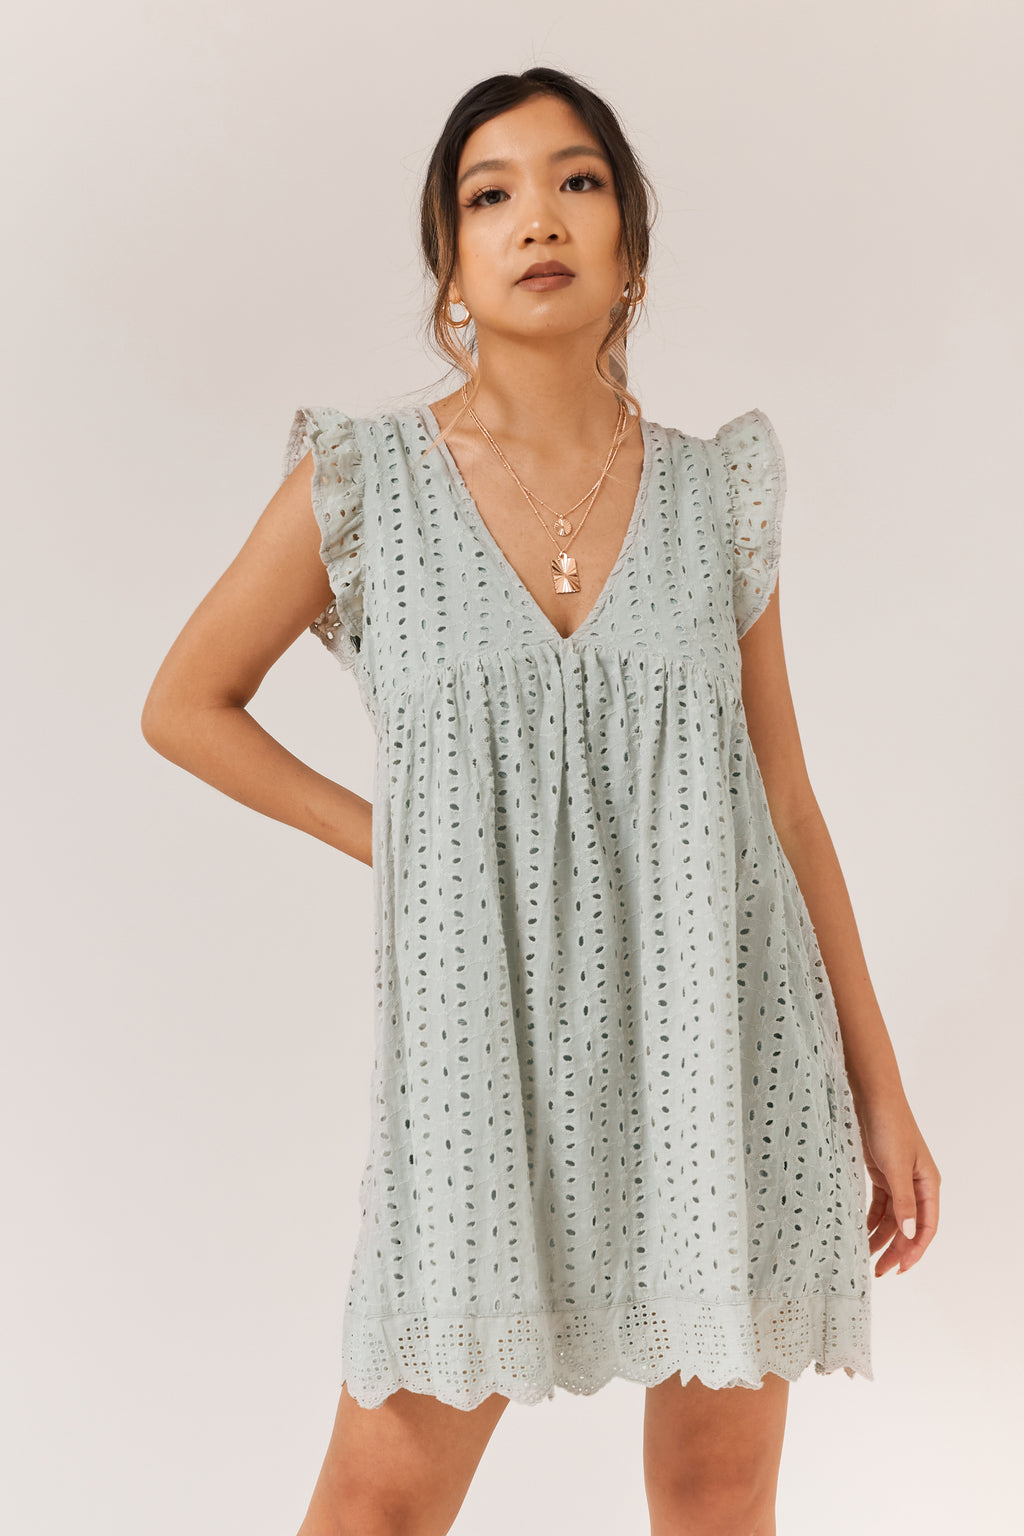 Tulip Romper Dress - Olive